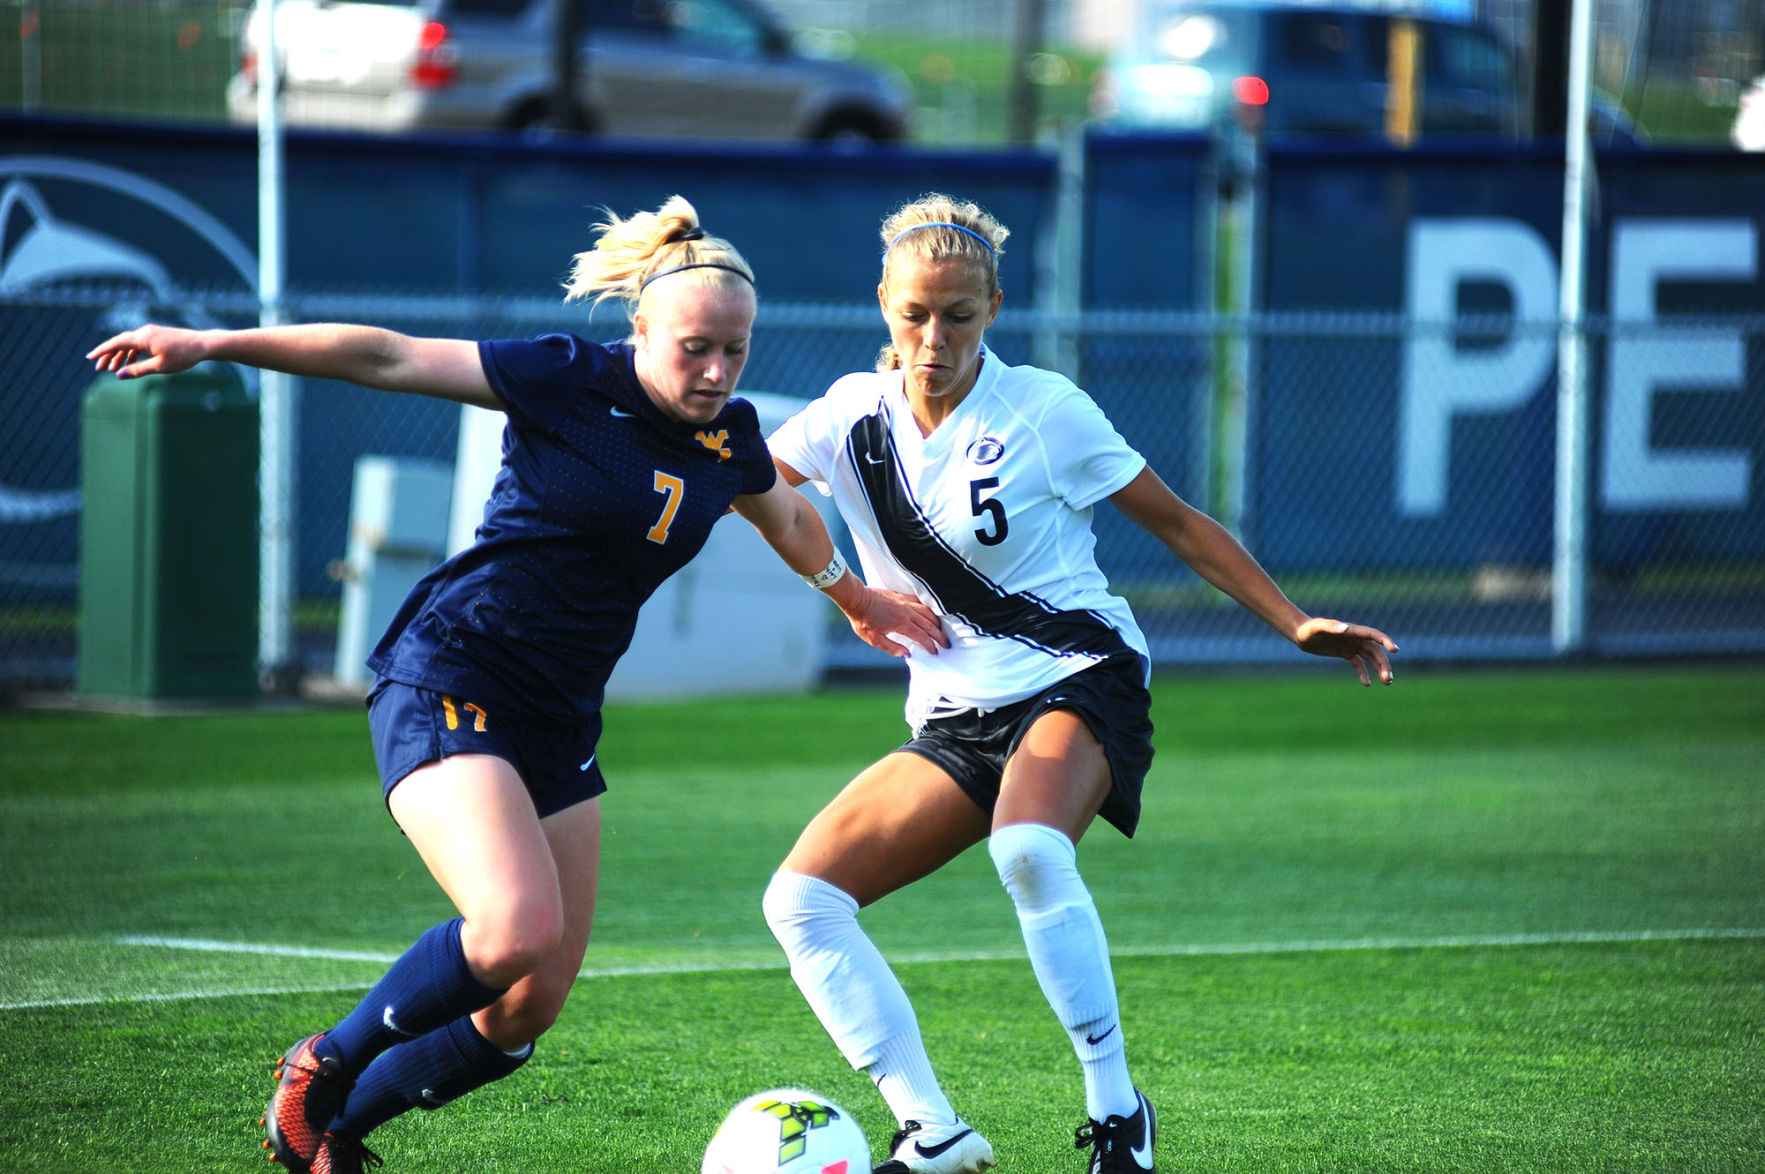 Penn State Tops UNC in Top-10 Women's Soccer Showdown